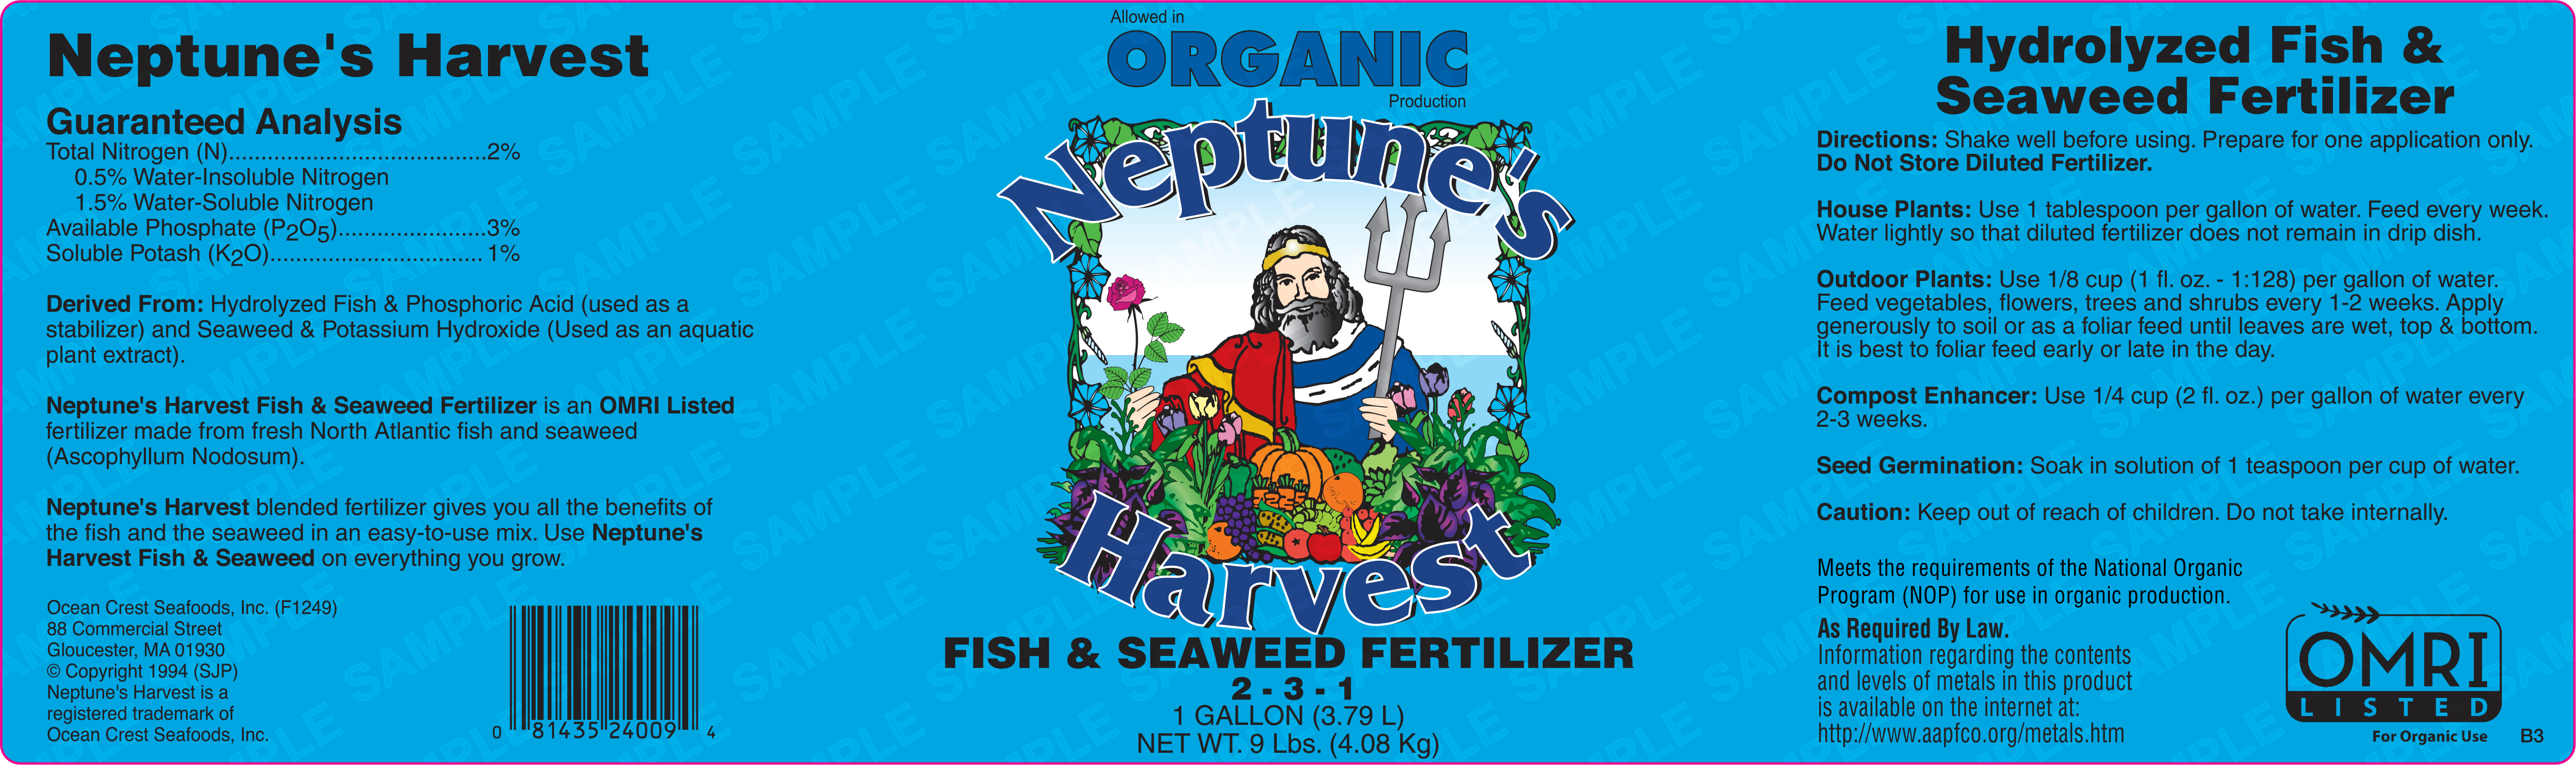 Neptune's Harvest Fish & Seaweed Fertilizer Product Label